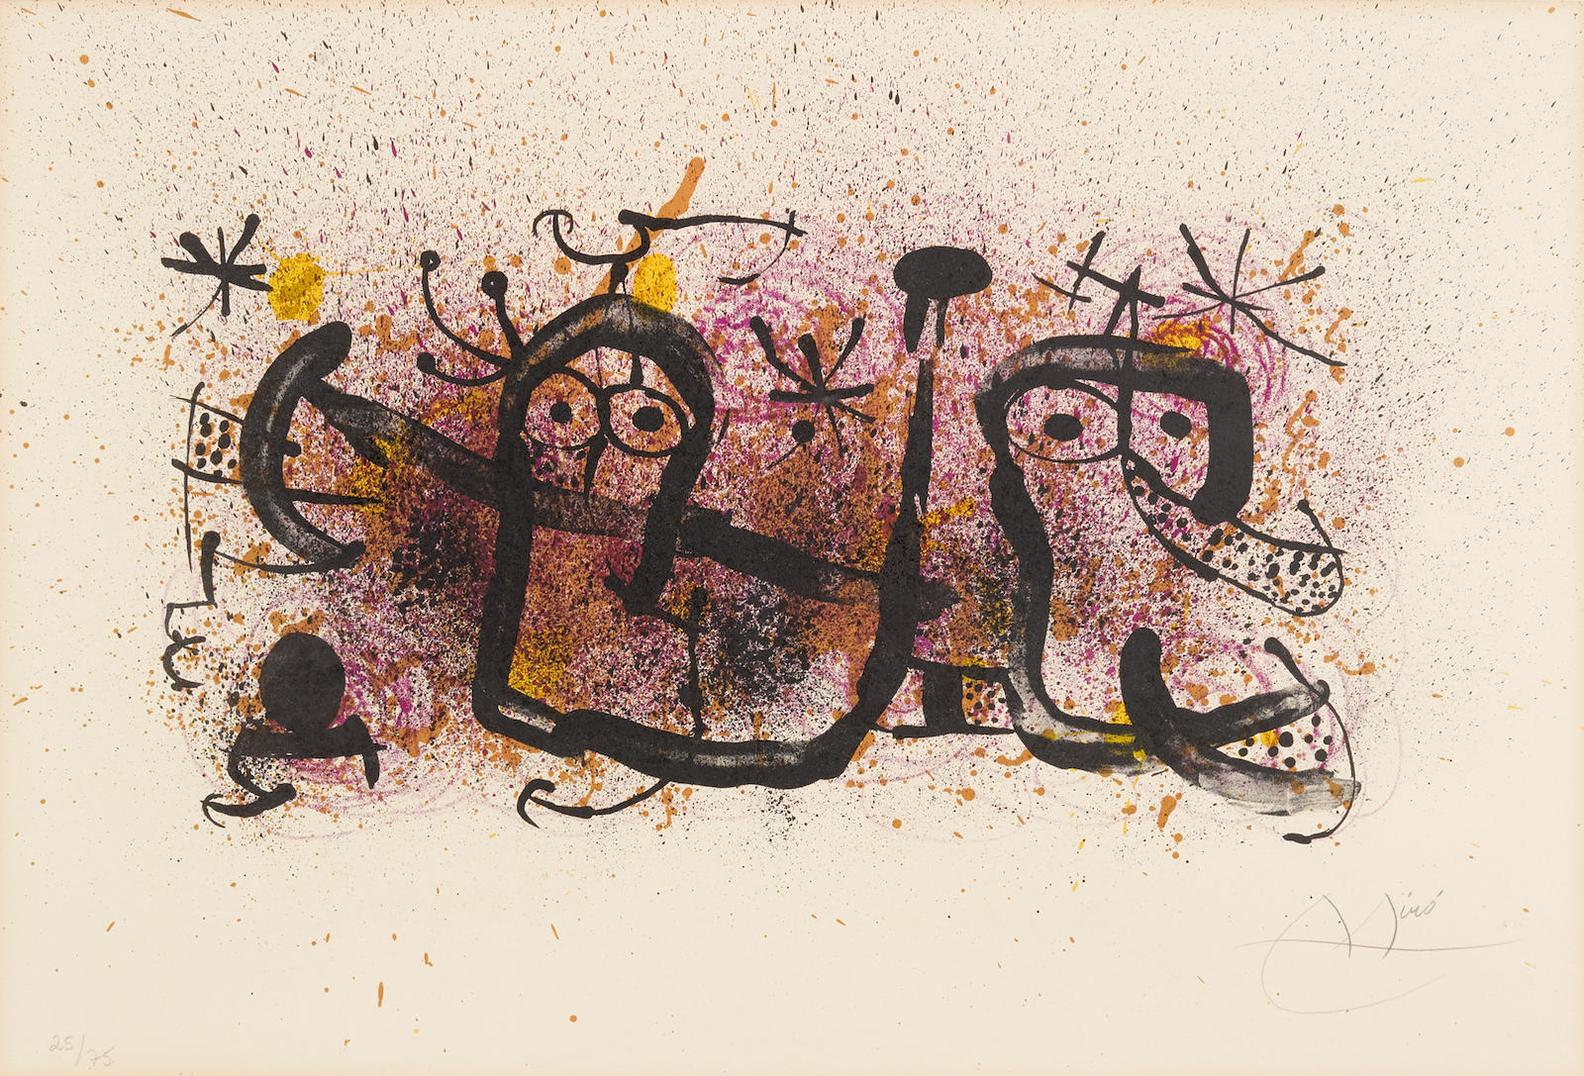 Joan Miro-Pl. 6, From Ma De Proverbis-1970